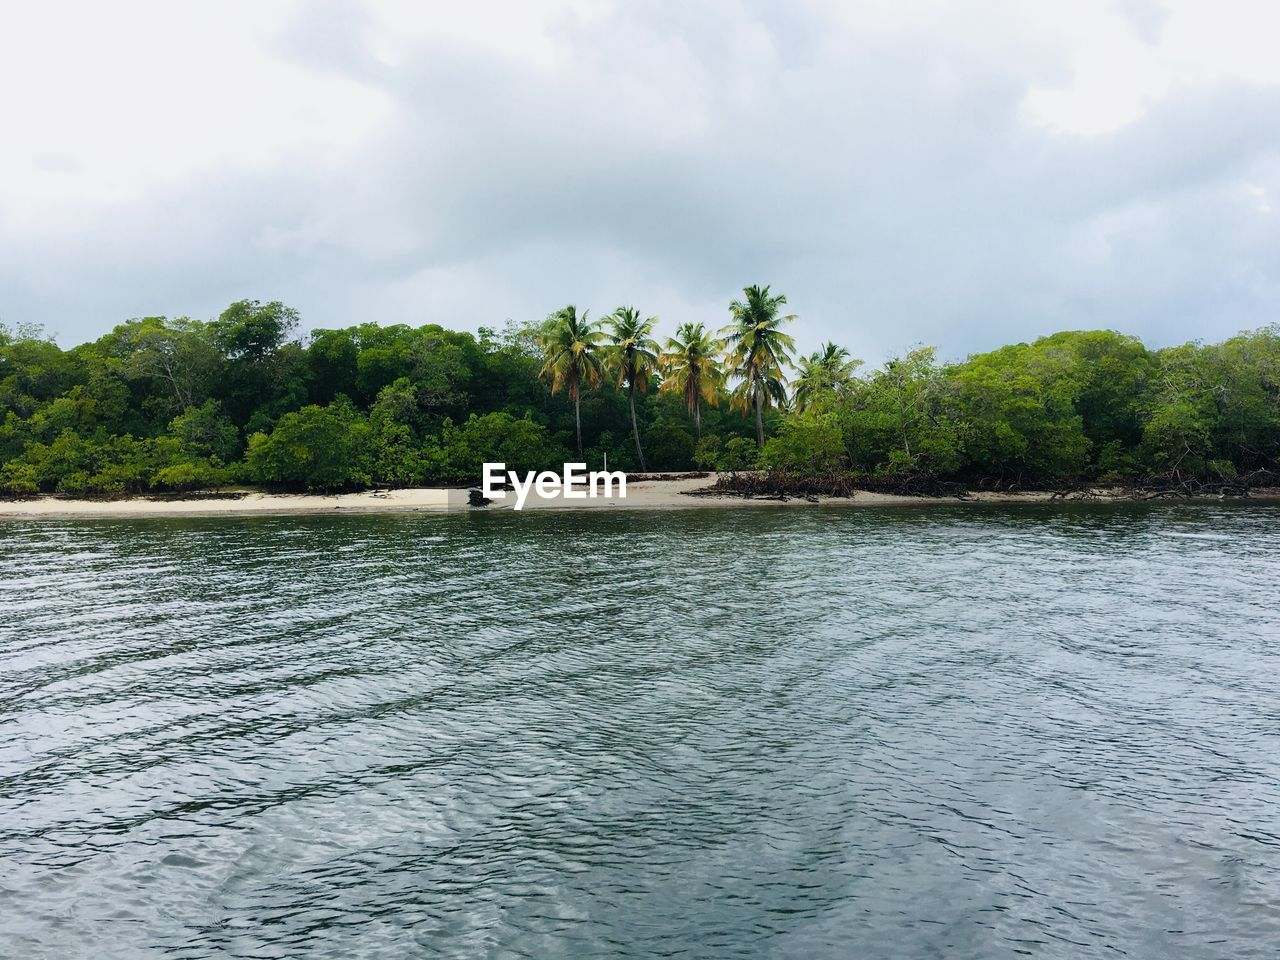 water, tree, sky, nature, beauty in nature, tropical climate, plant, land, sea, tranquility, scenics - nature, cloud - sky, waterfront, tranquil scene, palm tree, environment, freedom, beach, remote, outdoors, no people